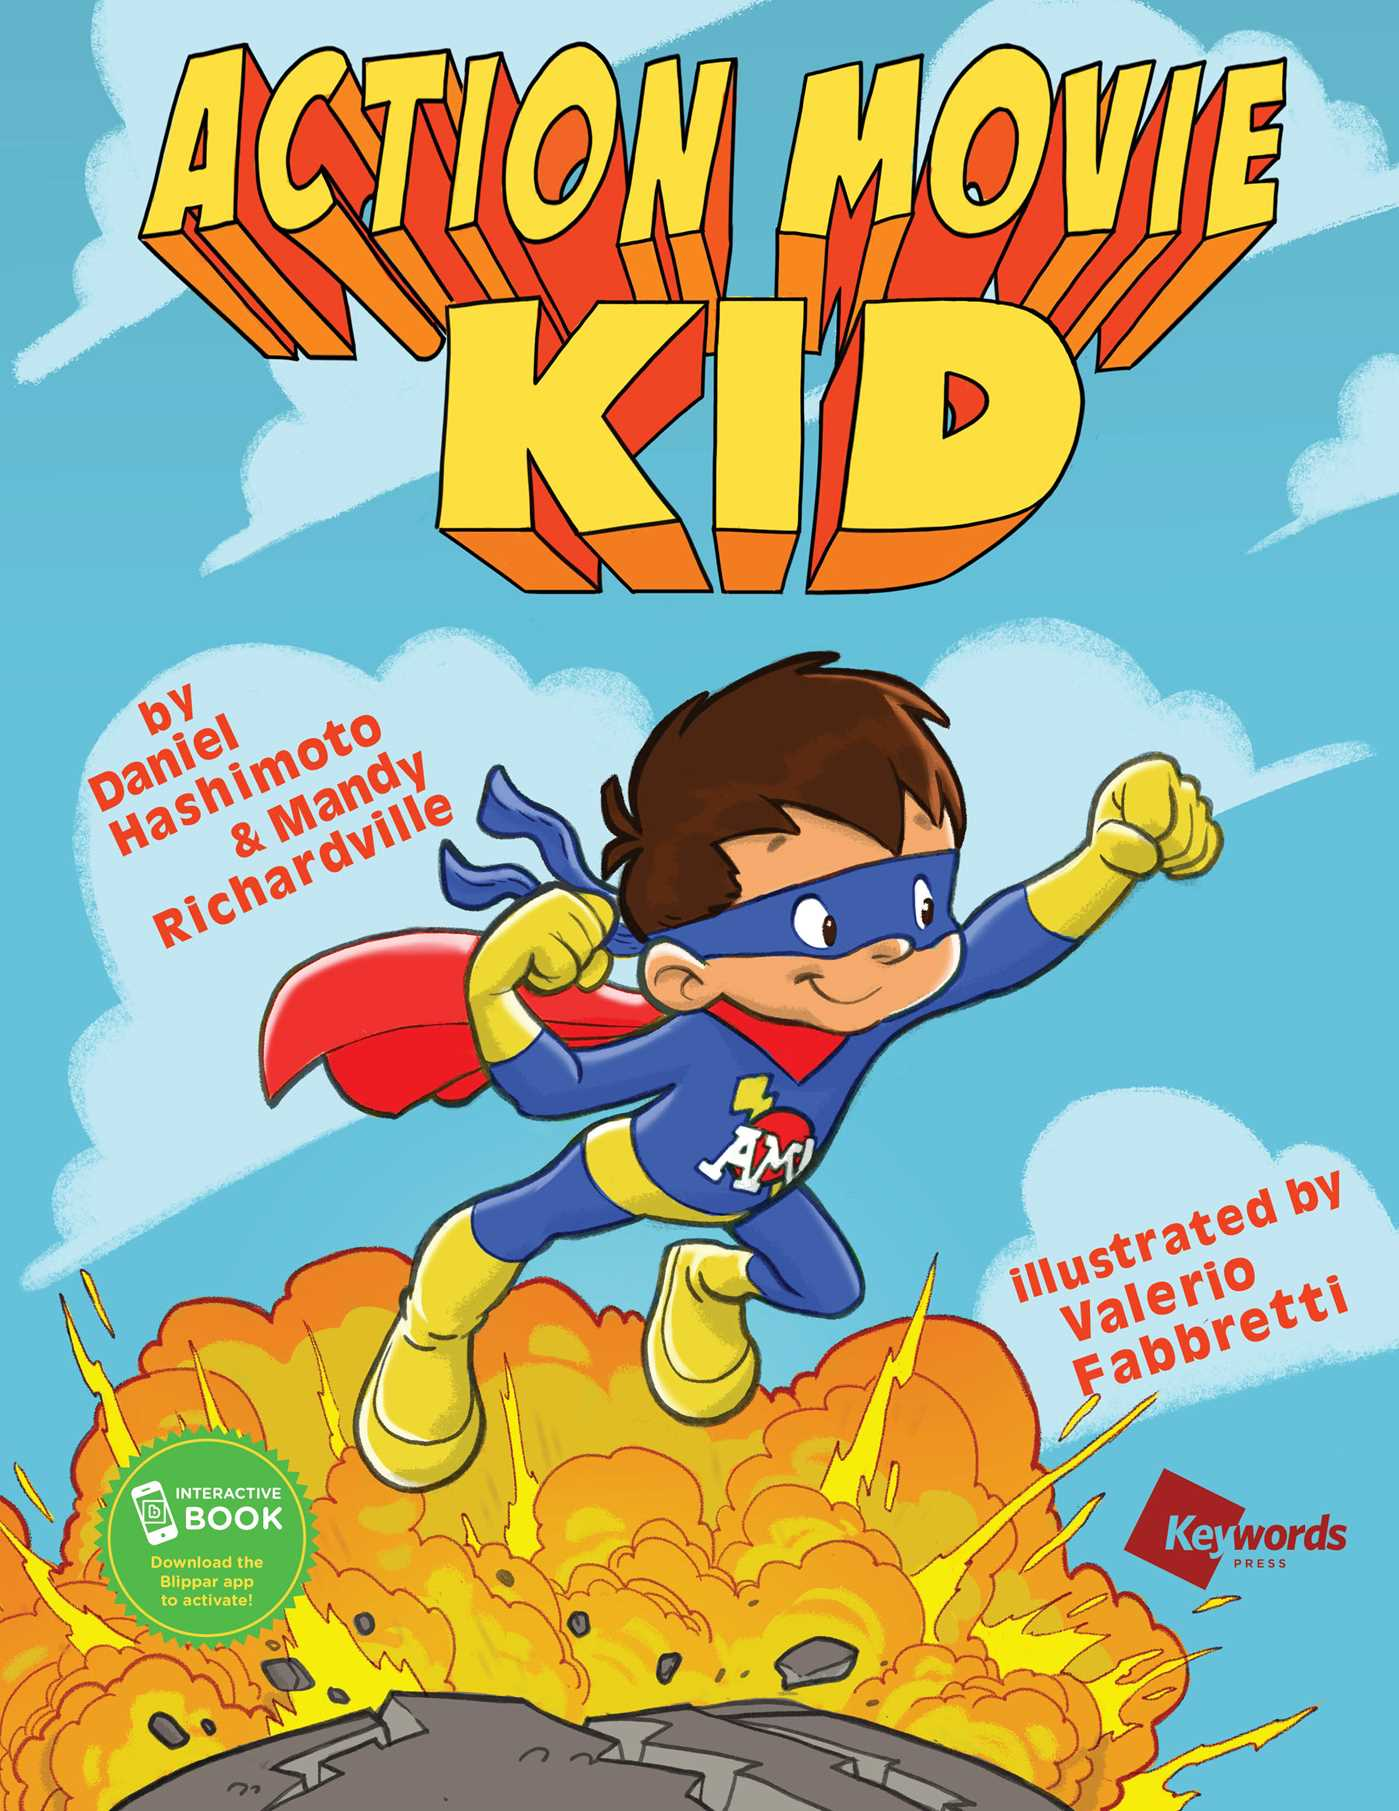 Cover Page For Kids Book : Action movie kid book by daniel hashimoto mandy